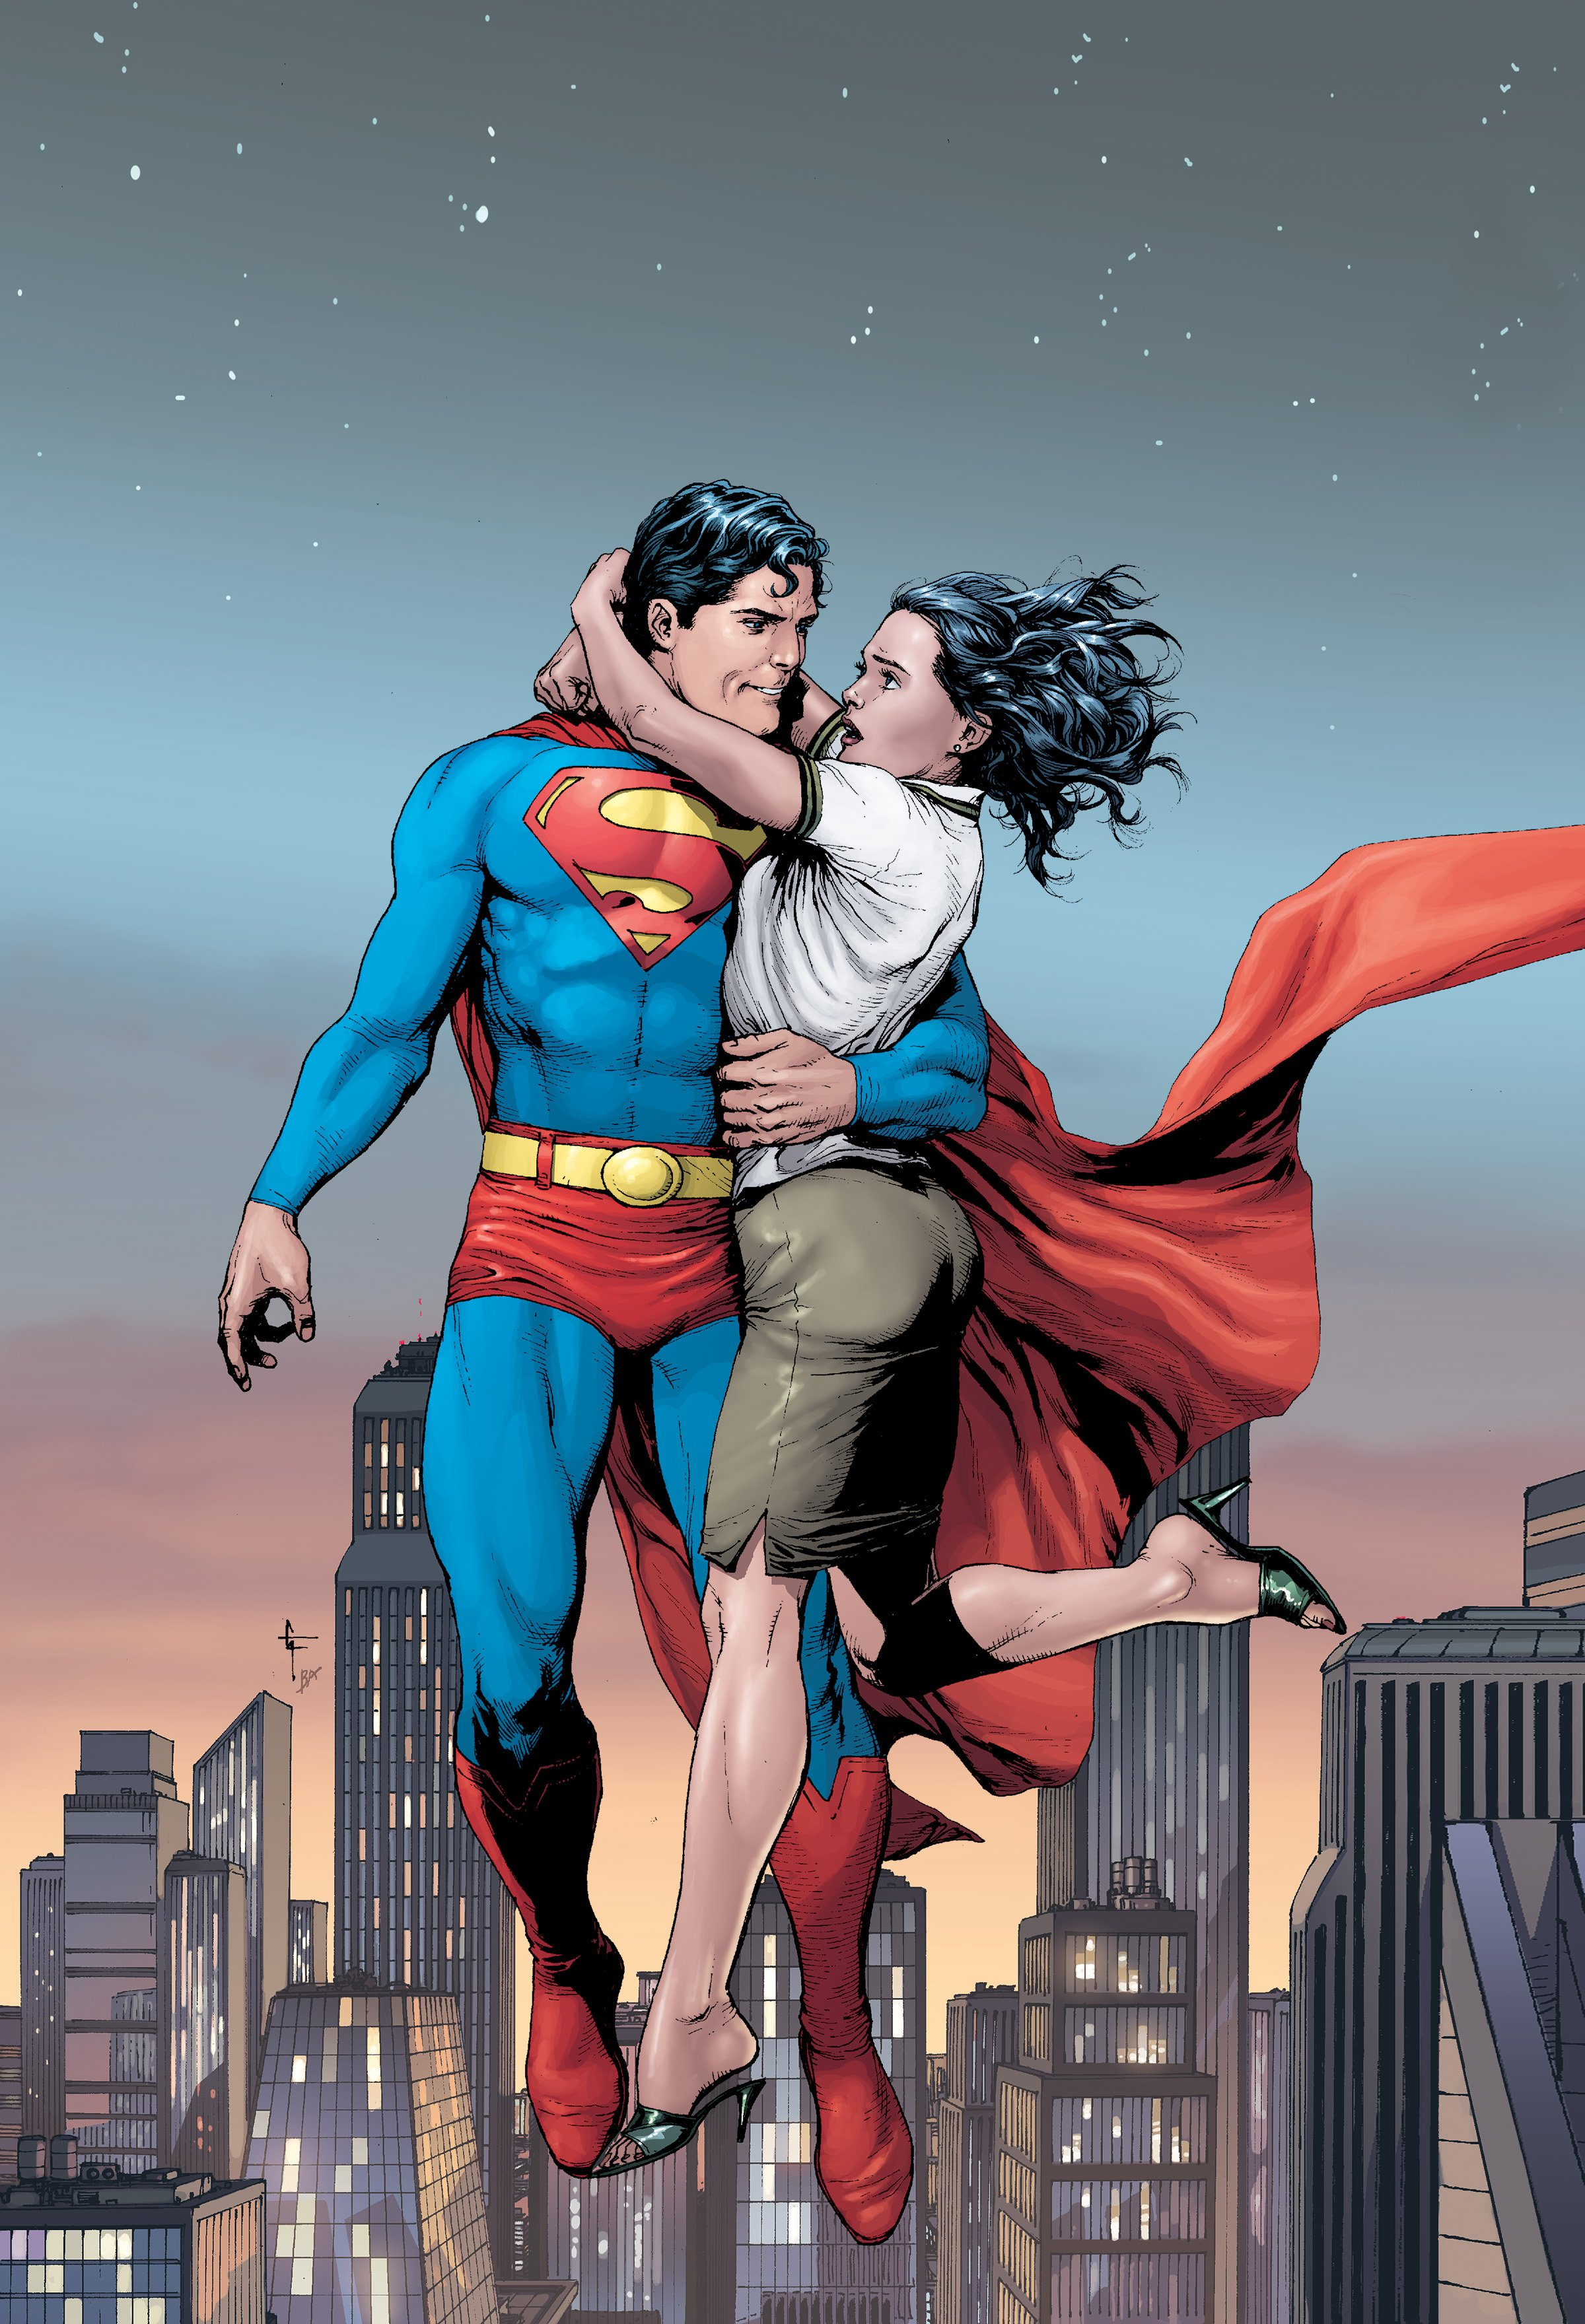 http://img3.wikia.nocookie.net/__cb20100626045827/marvel_dc/images/9/92/Superman_0071.jpg